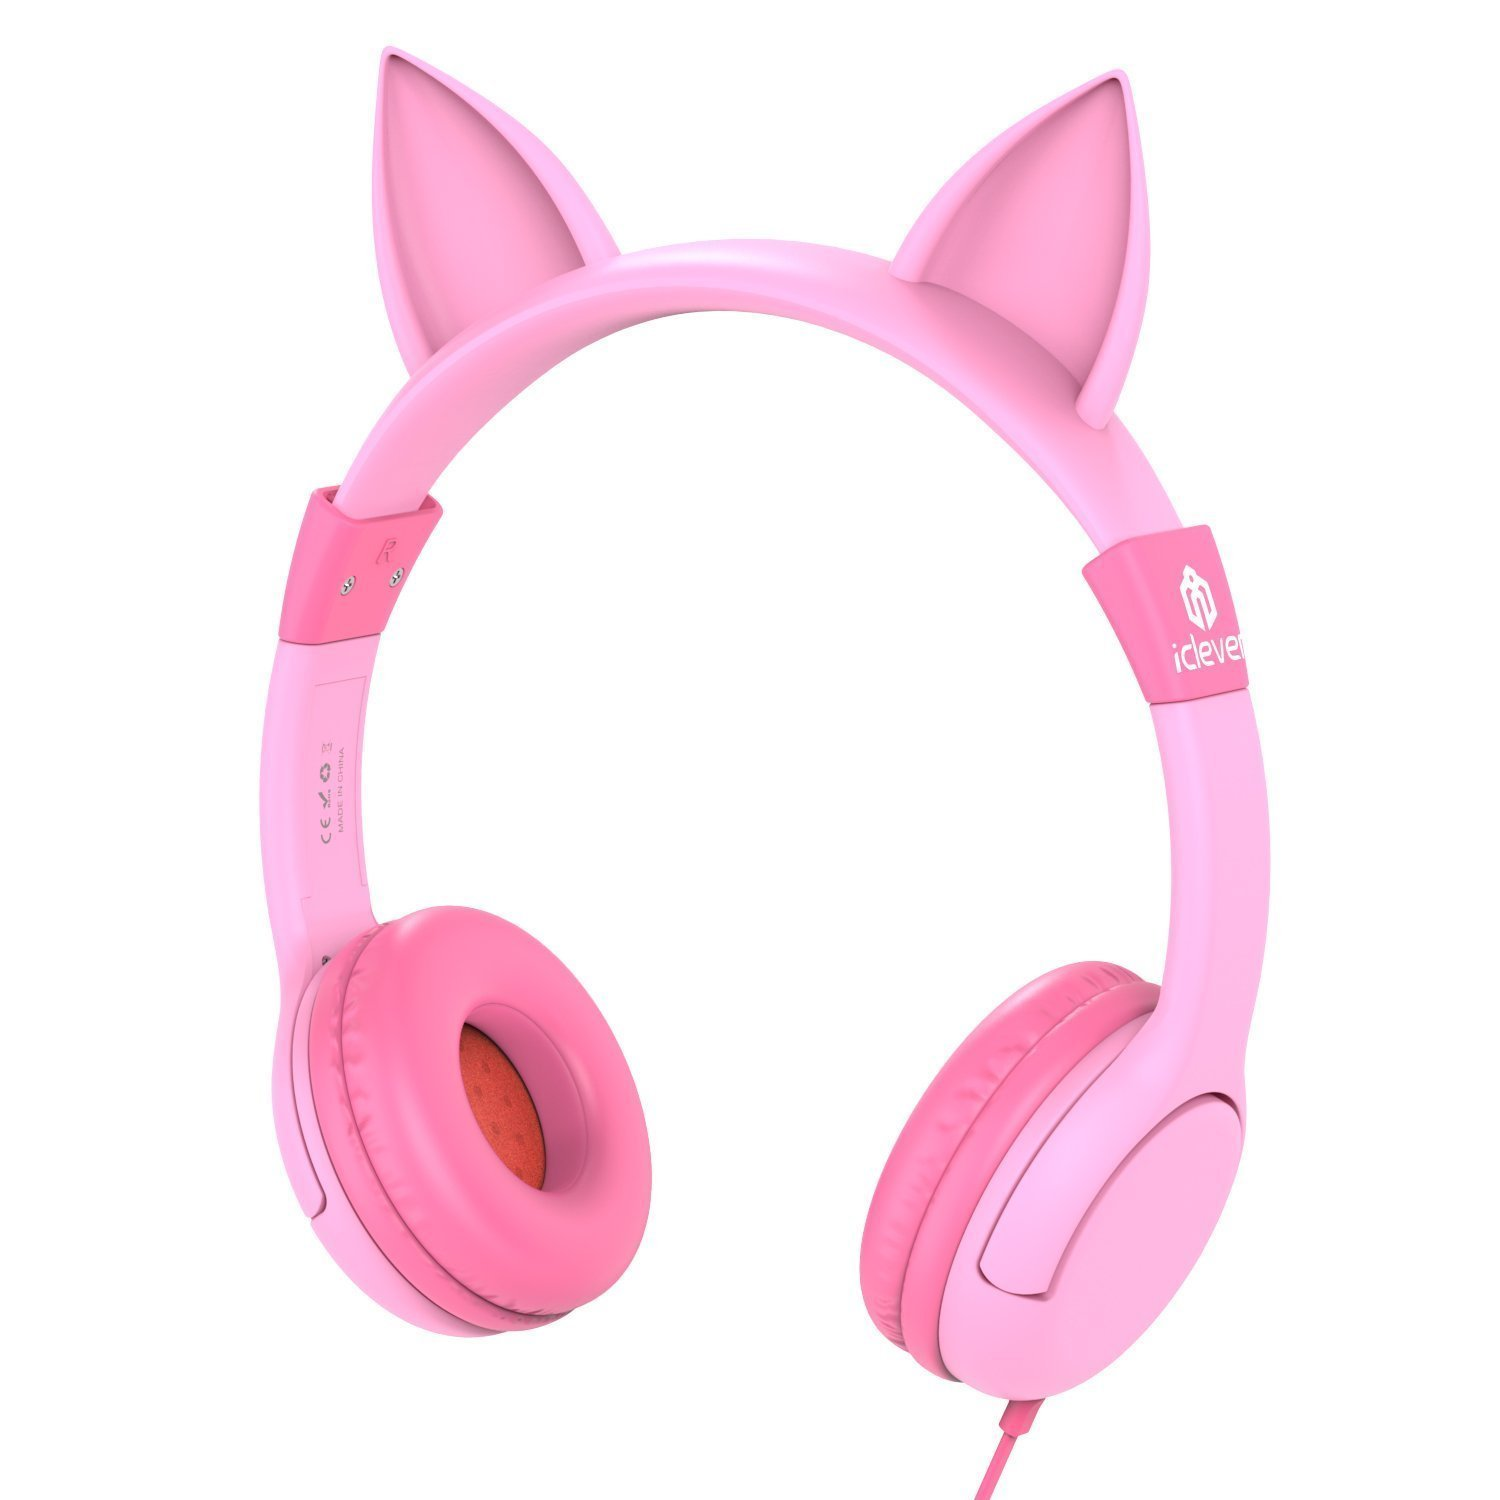 Kids Headphones girls, iClever Volume Limiting Headphones for Kids, Children Headphones, Baby Headphones for School/Travel/Phone/Kindle/PC/MP3